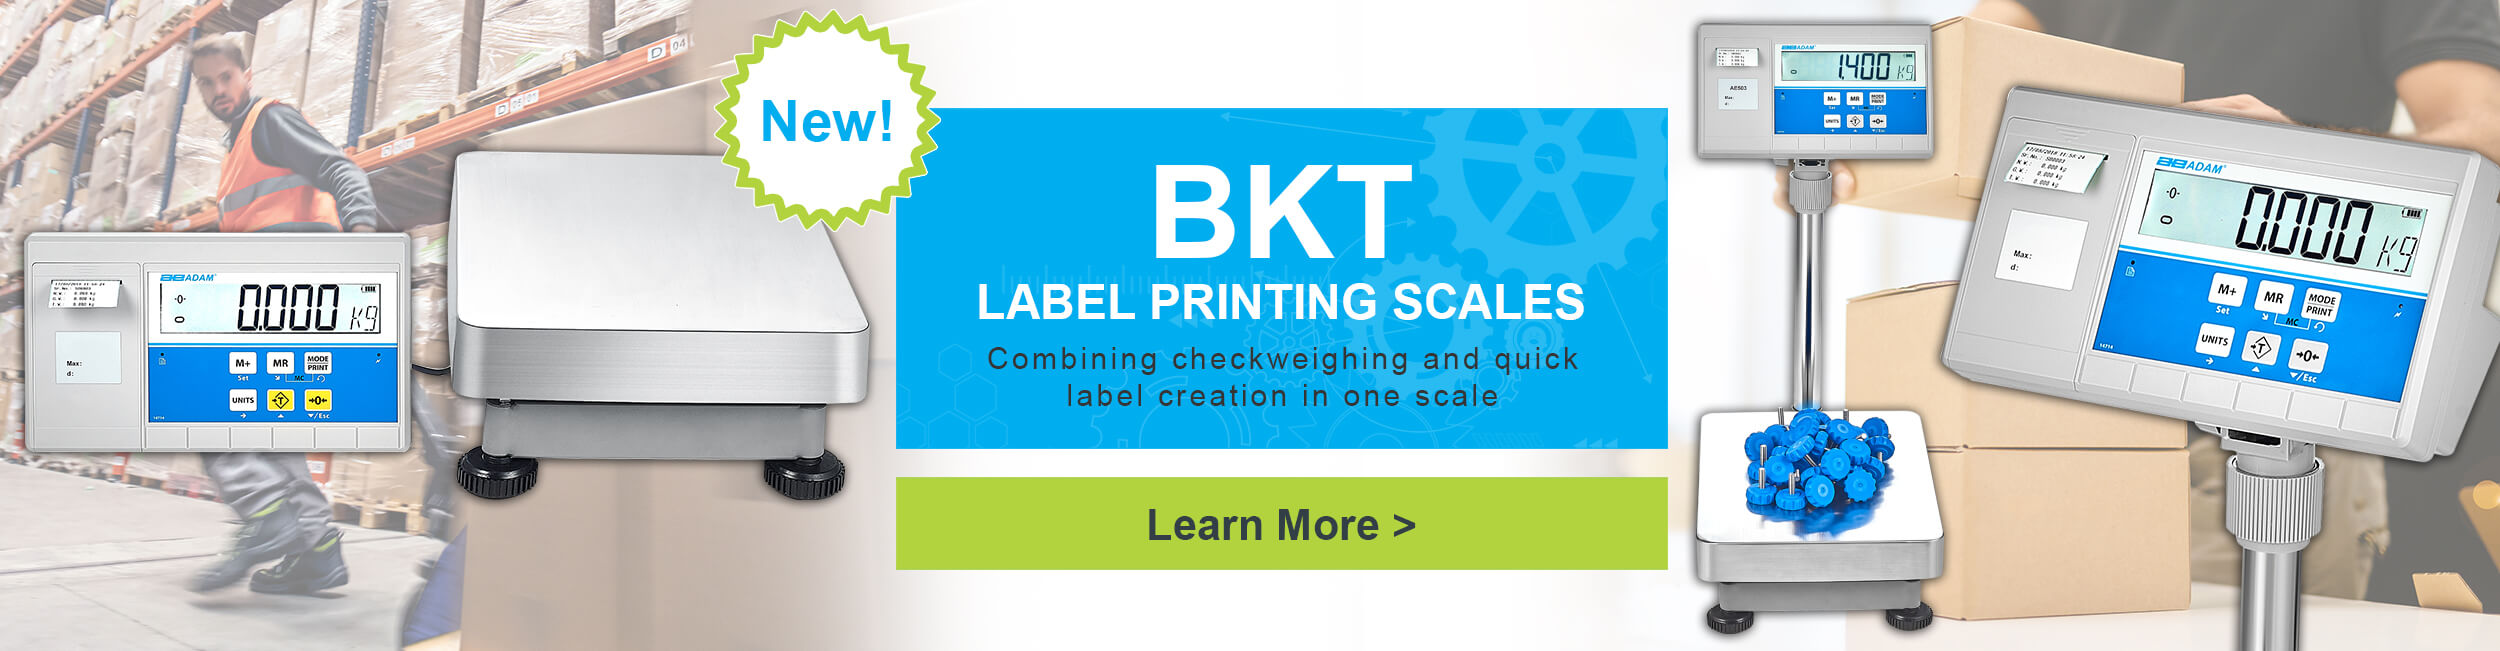 New! BKT Label Printing Scales. Combining checkweighing and quick label creation in one scale.